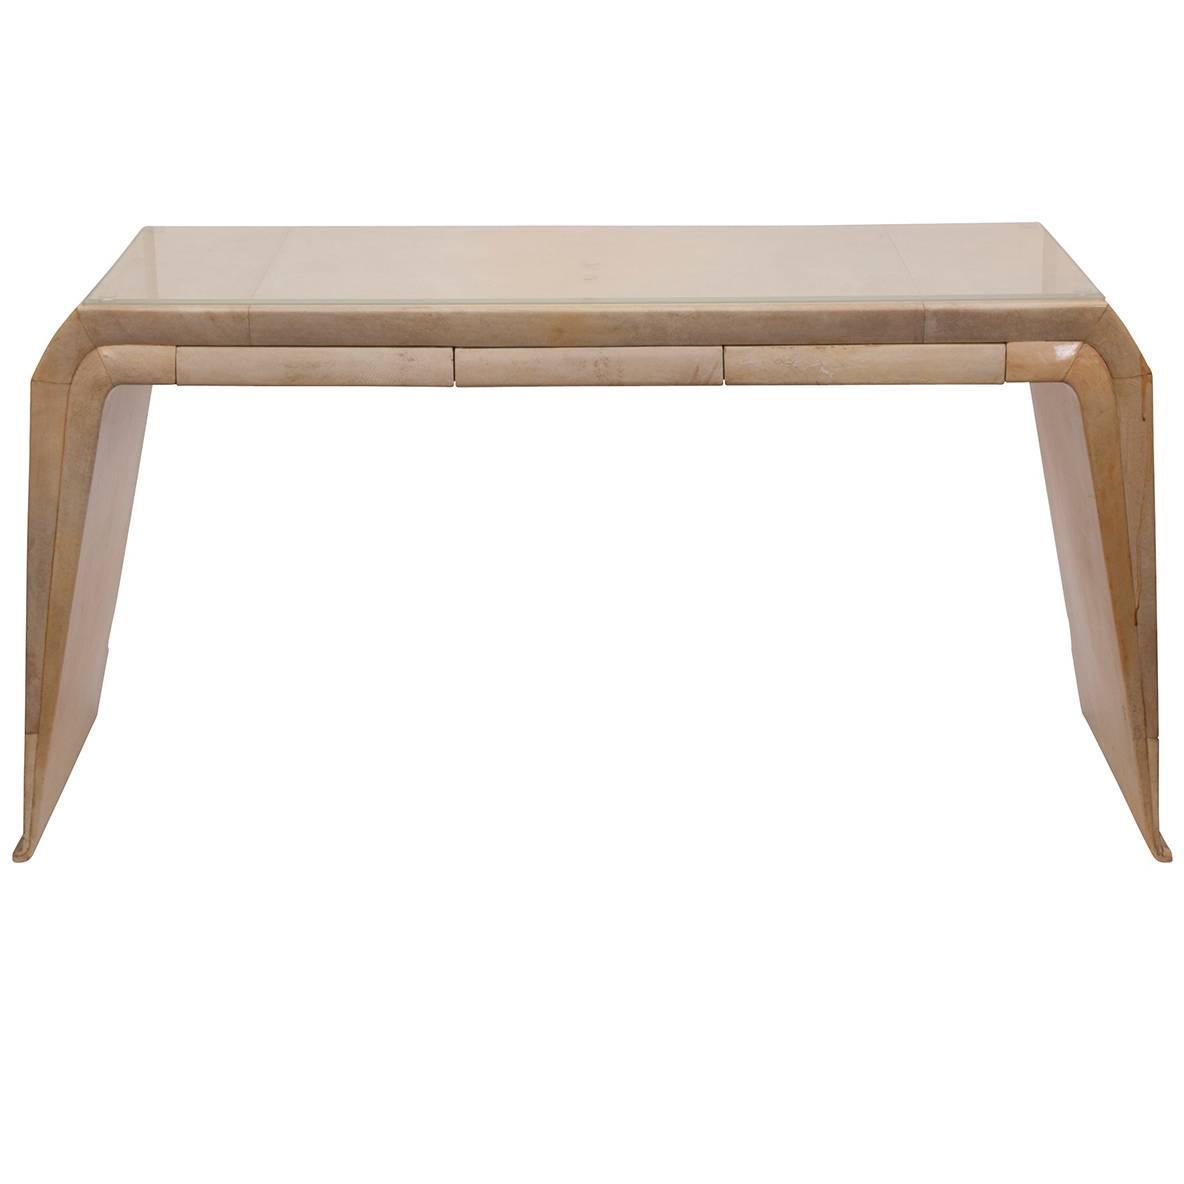 Stunning narrow vanity console for sale at 1stdibs for Slim vanity table